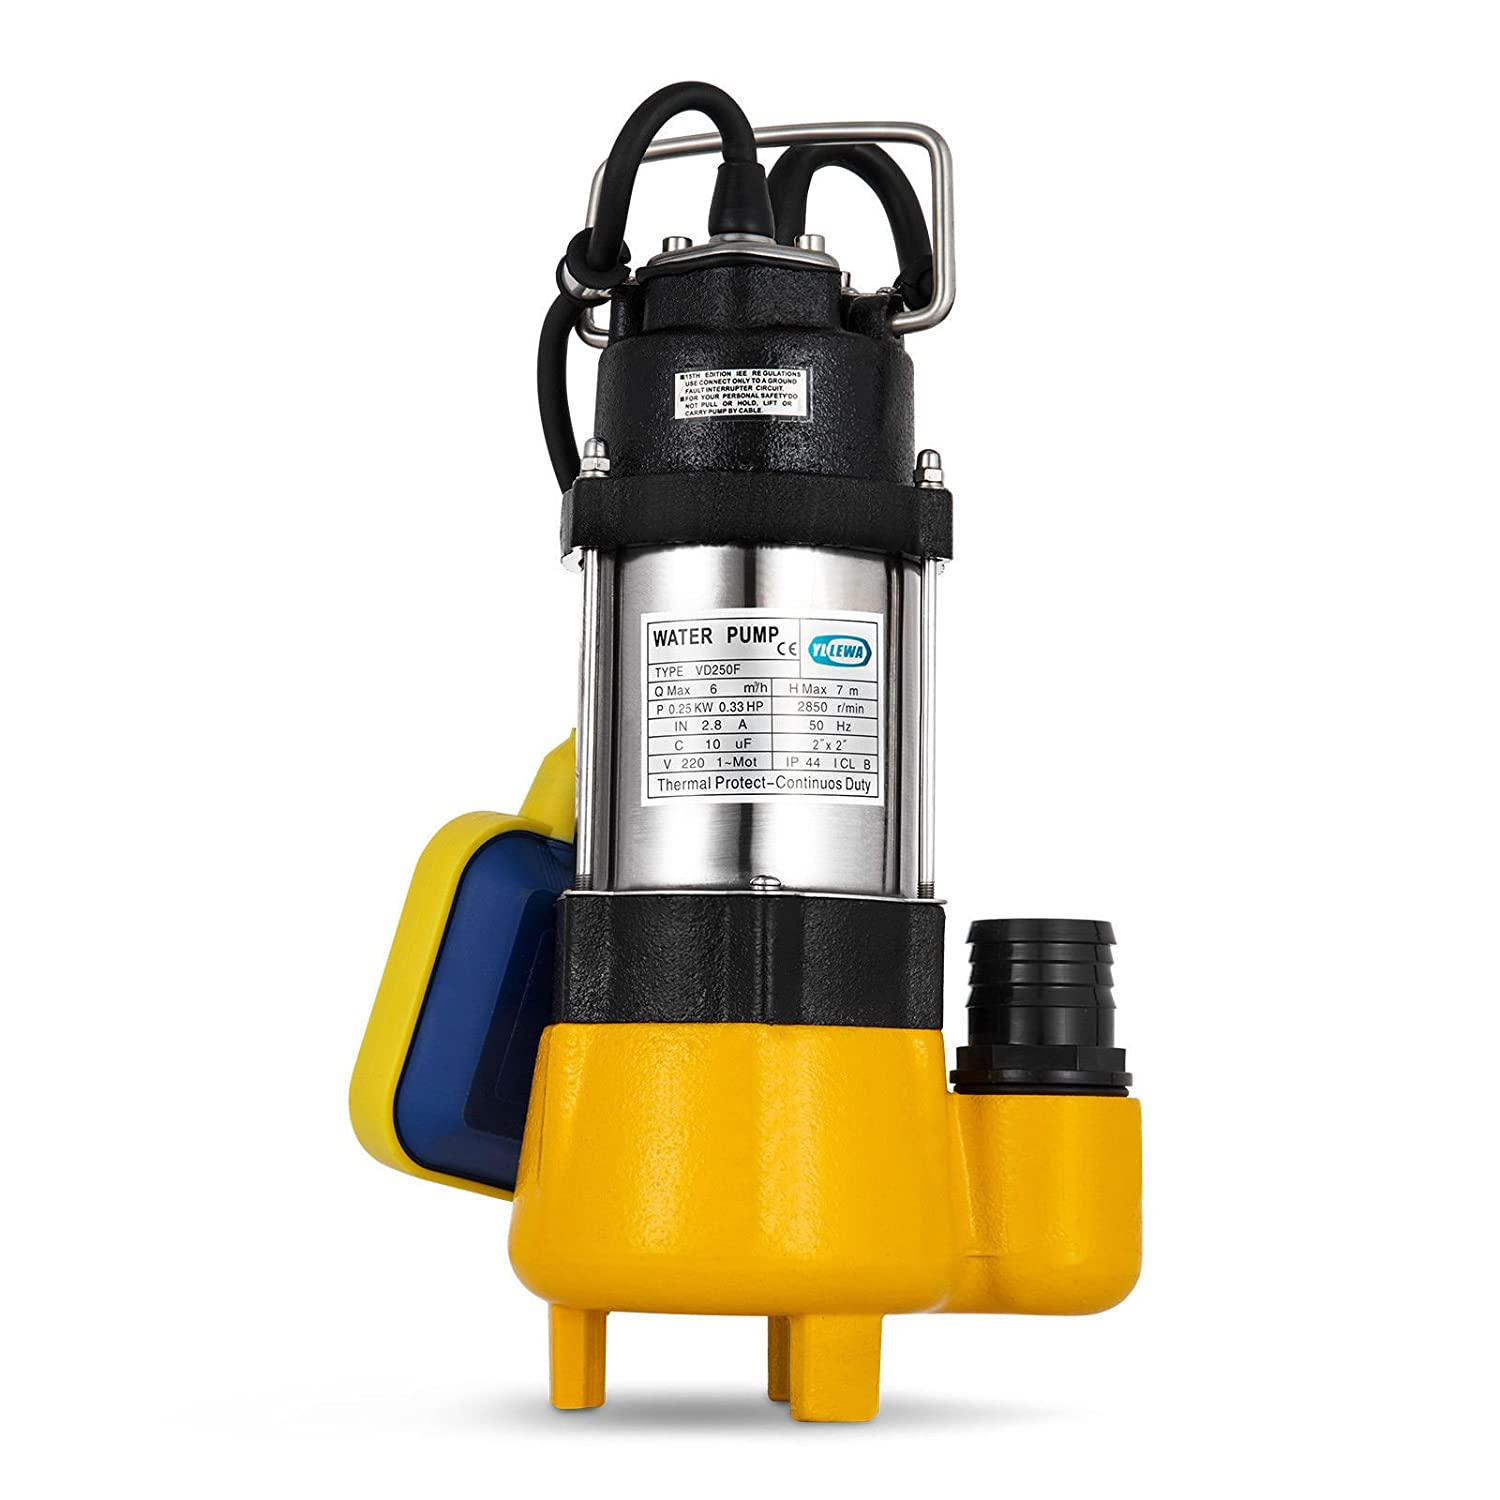 Techlifer Submersible Water Pump 250W Submersible Sewage Pump Stainless Steel Electric Pump for Dirty Soiled Dirty Water Drain Septic Sump Pump with Floating Switch (250W)